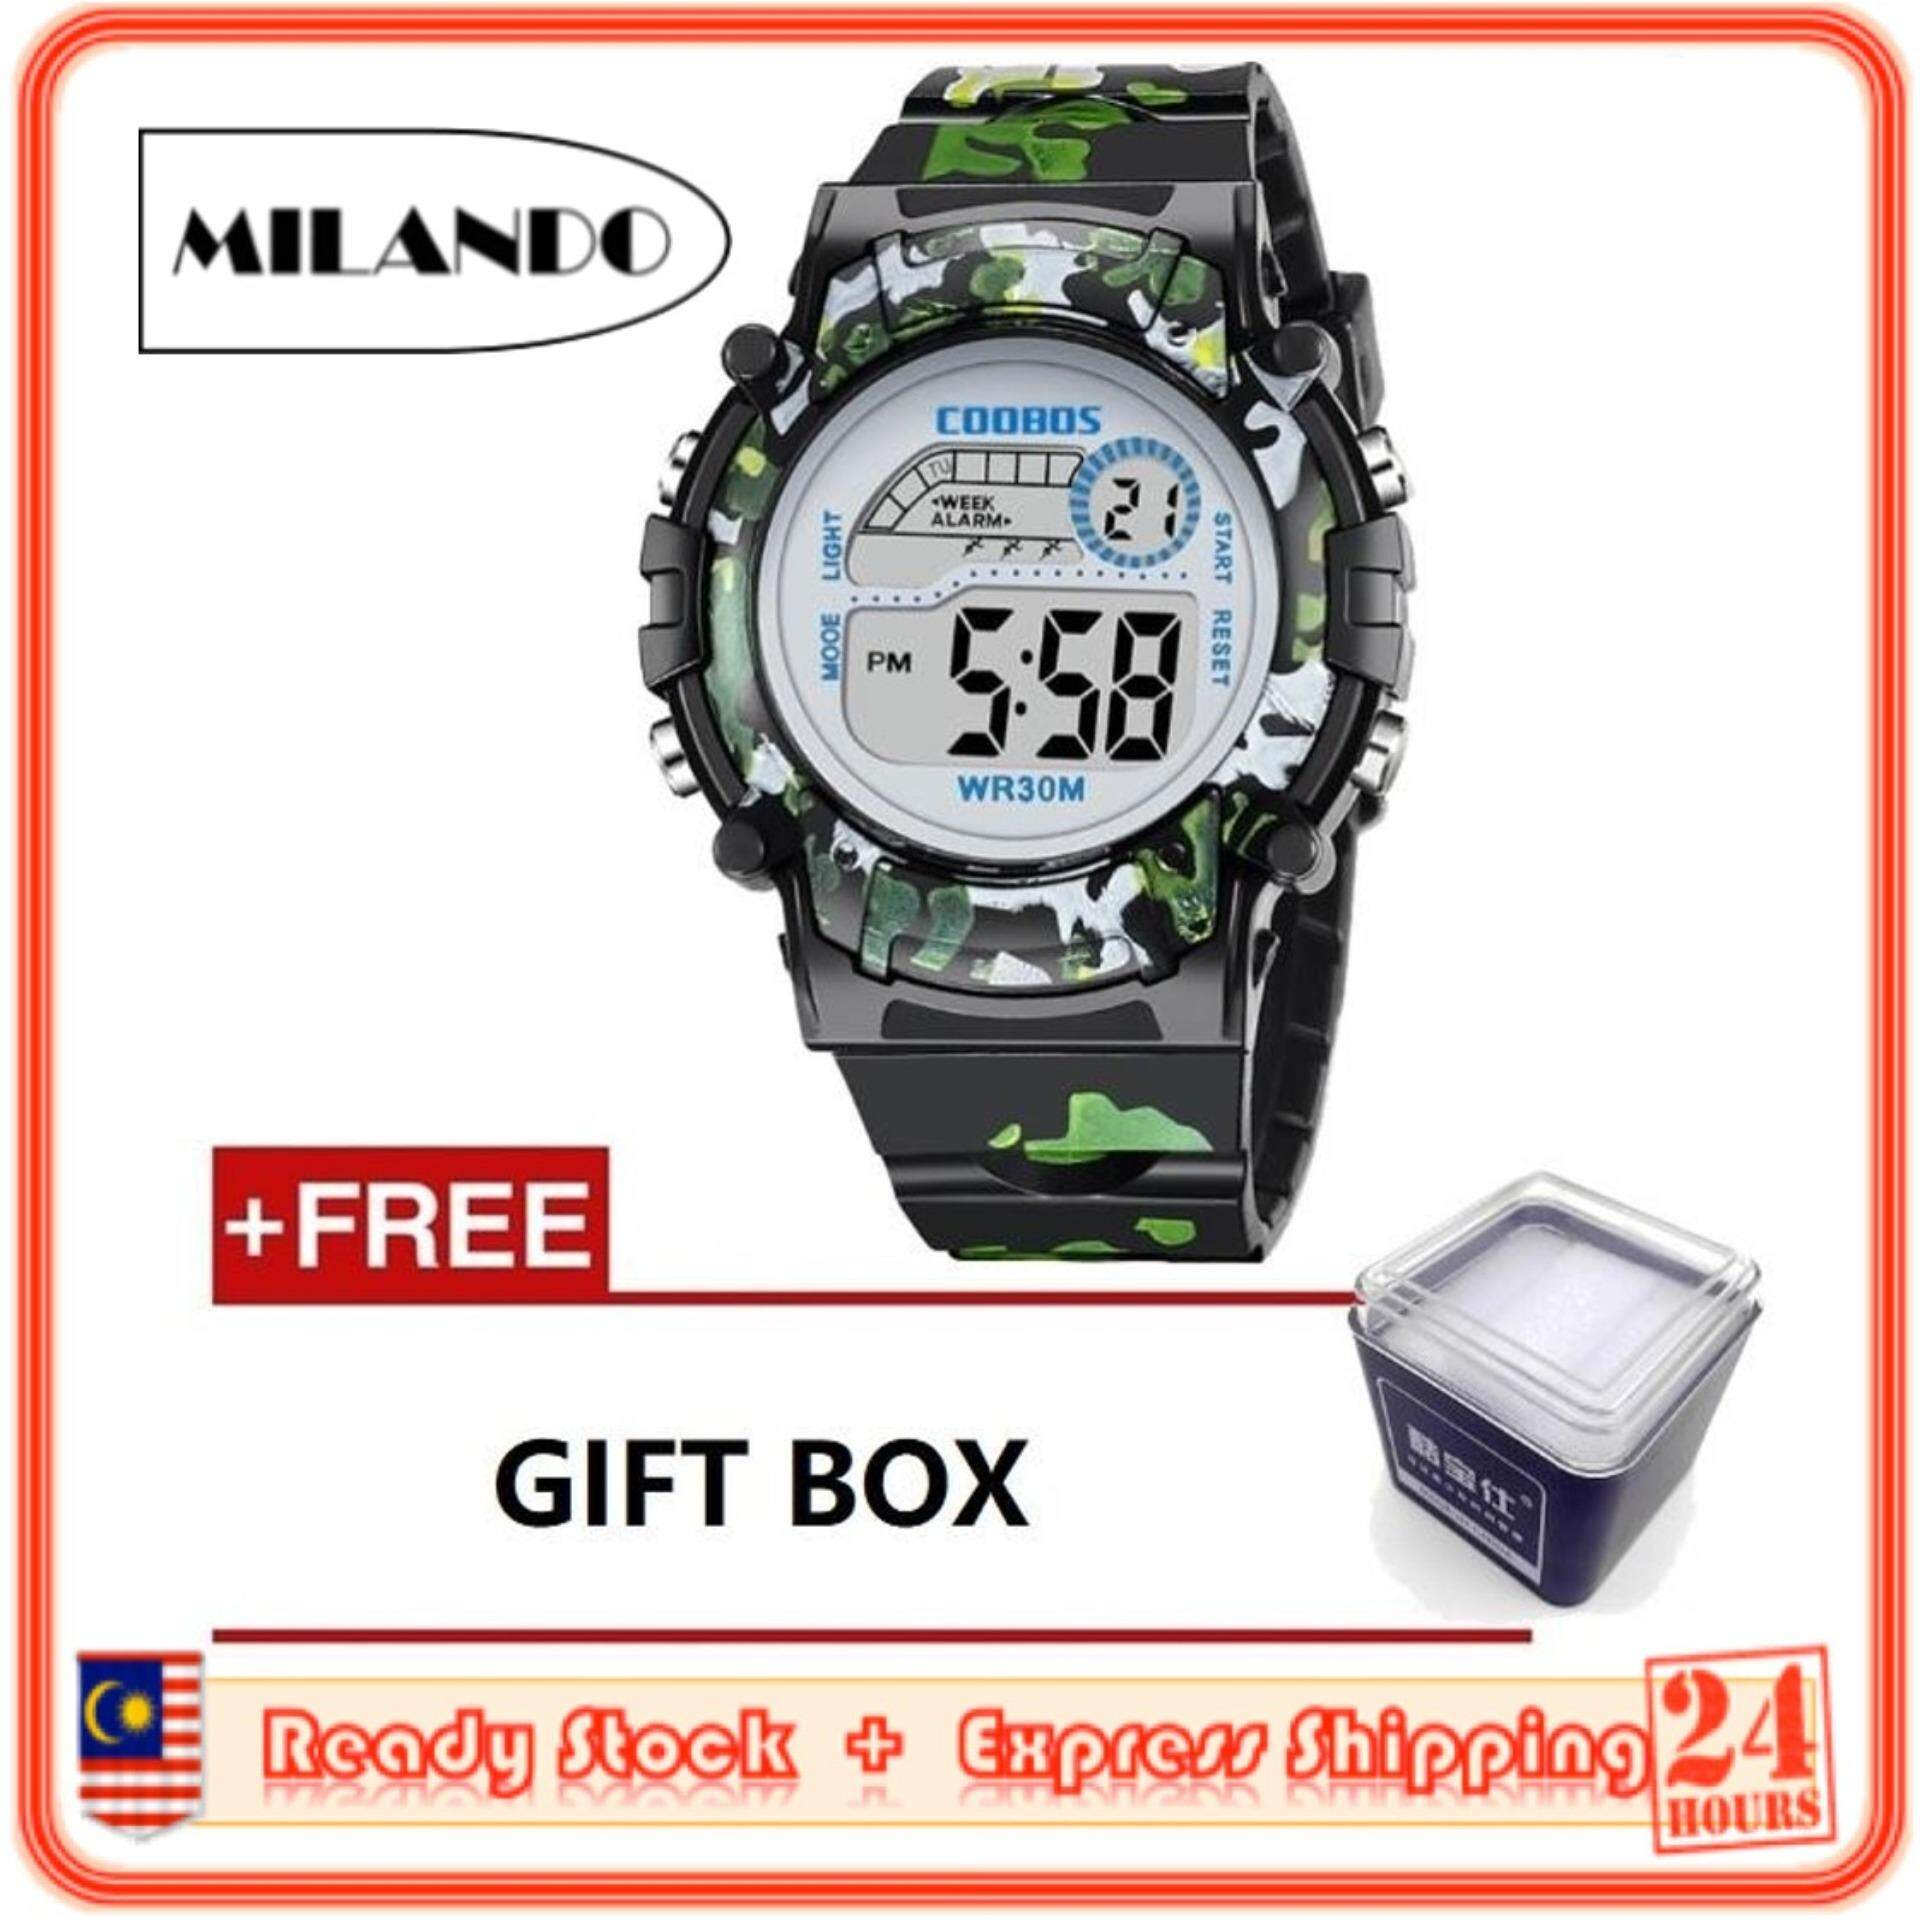 MILANDO Children watches LED Digital Multifunctional 30M Waterproof Outdoor Sports Watch FREE GIFT BOX (Type 3) Malaysia